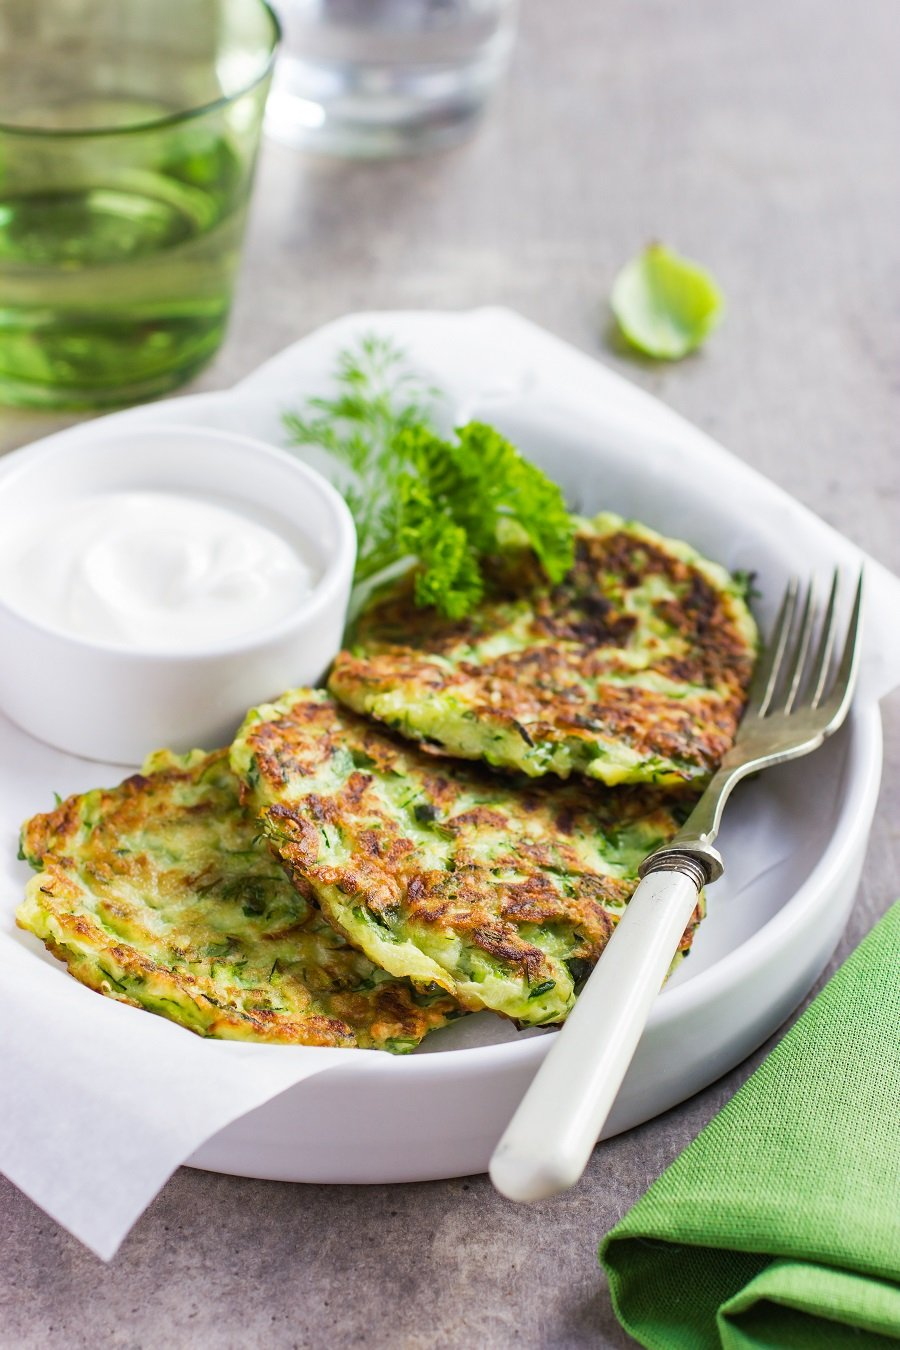 7 Delicious ways to use zucchini